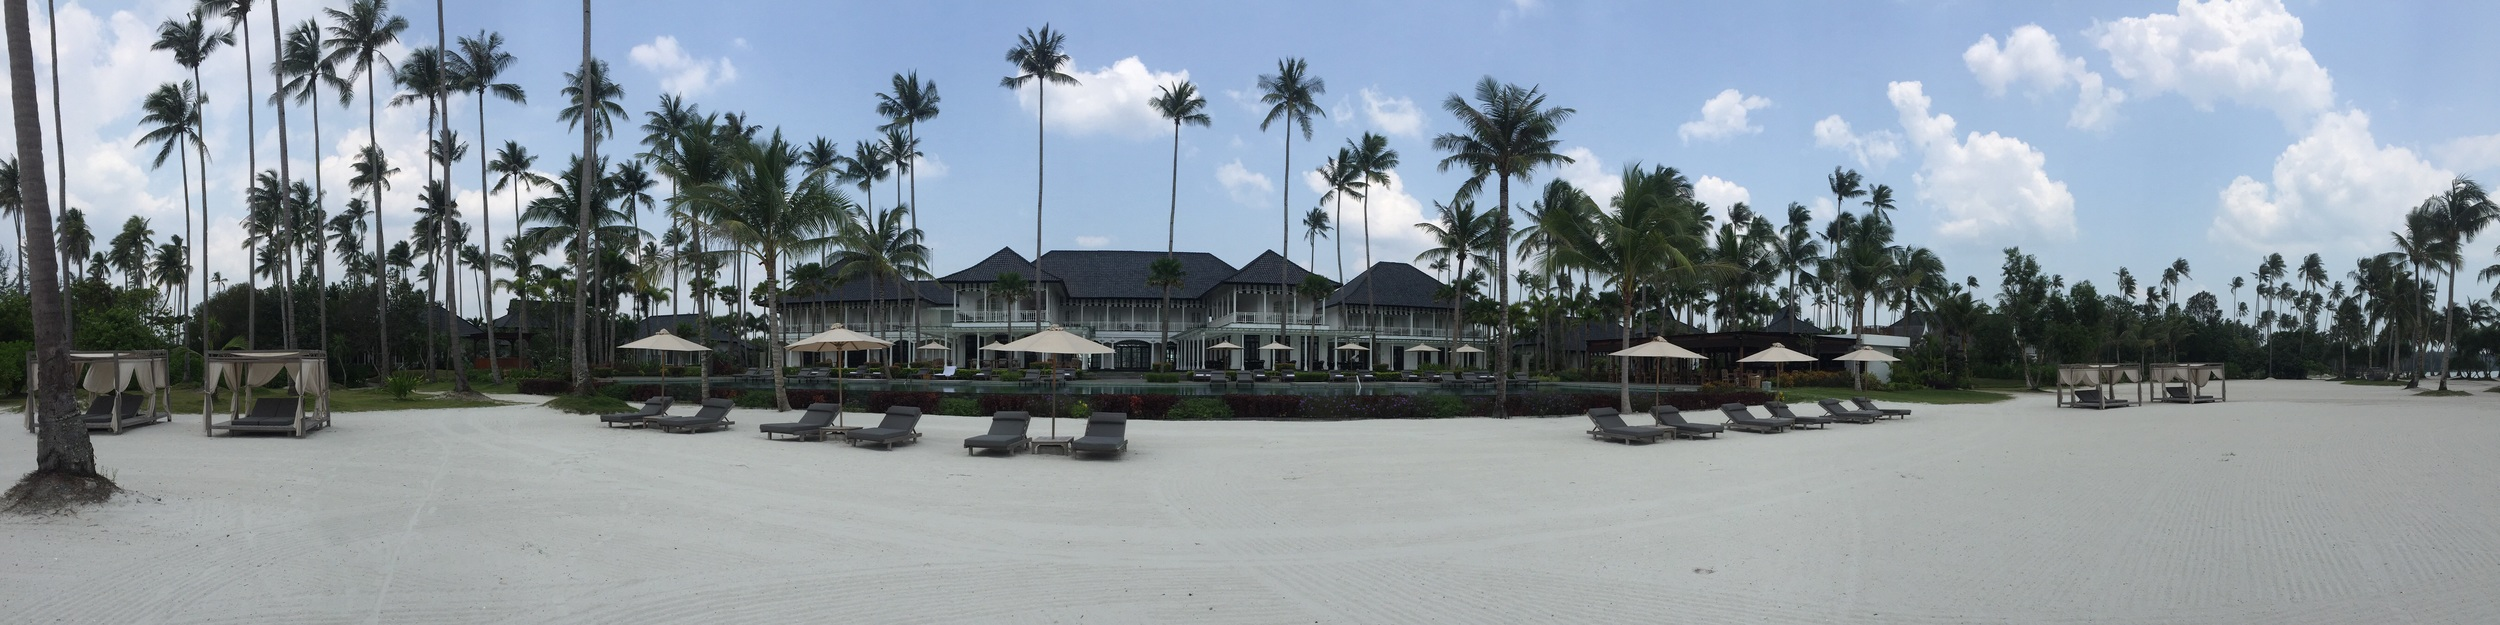 Bintan resort from the beach. Can you see the one towel? Yeah thats mine.